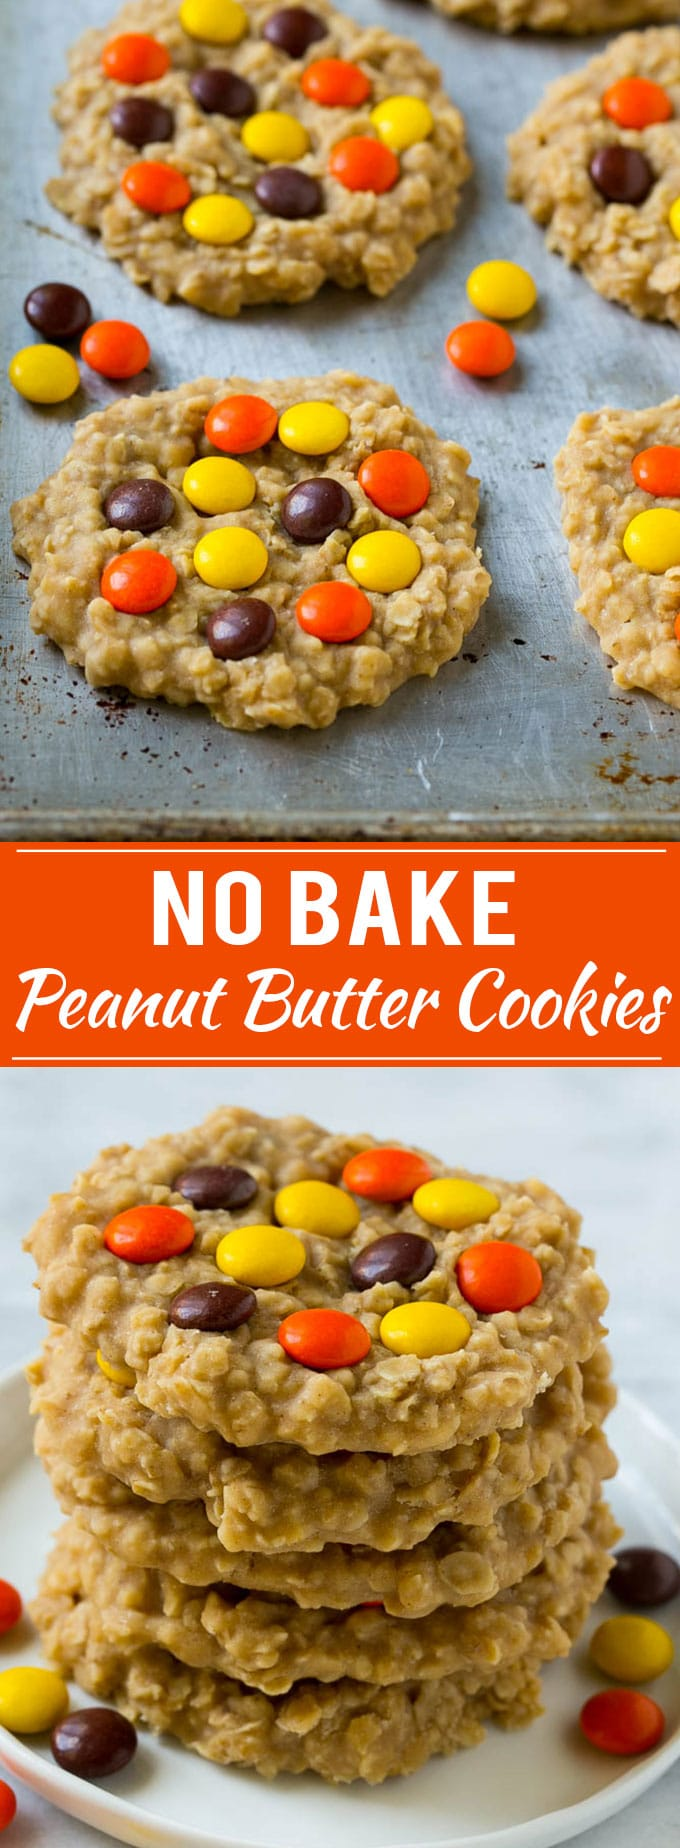 No Bake Peanut Butter Cookies Recipe | No Bake Cookies | Peanut Butter Cookies